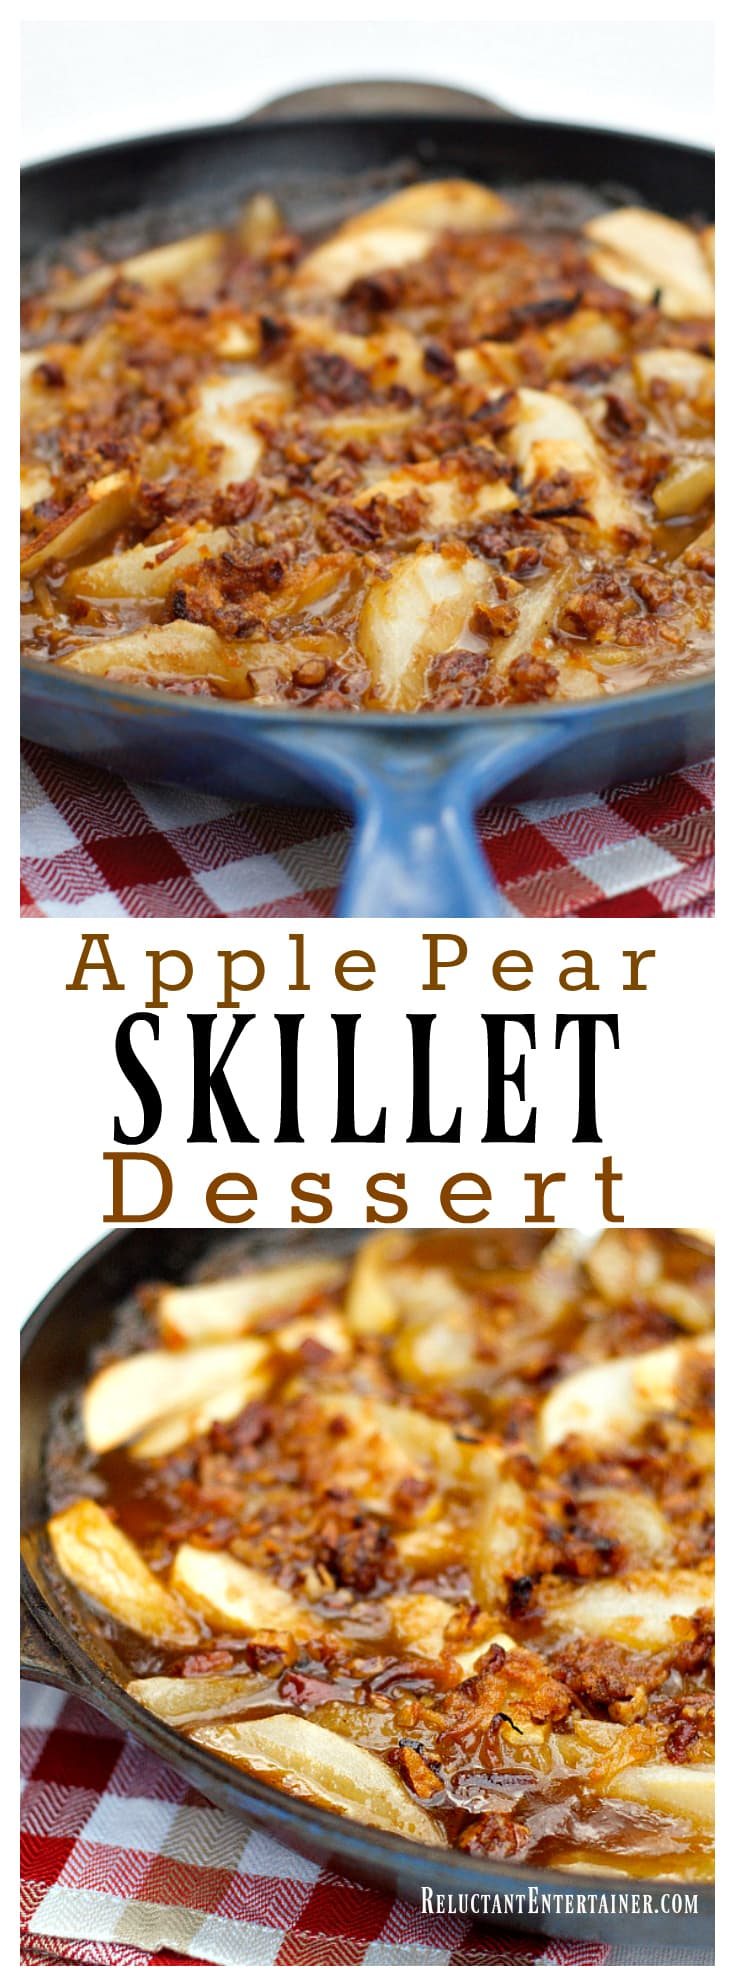 Apple Pear Skillet Dessert with Pecan Coconut Topping at ReluctantEntertainer.com